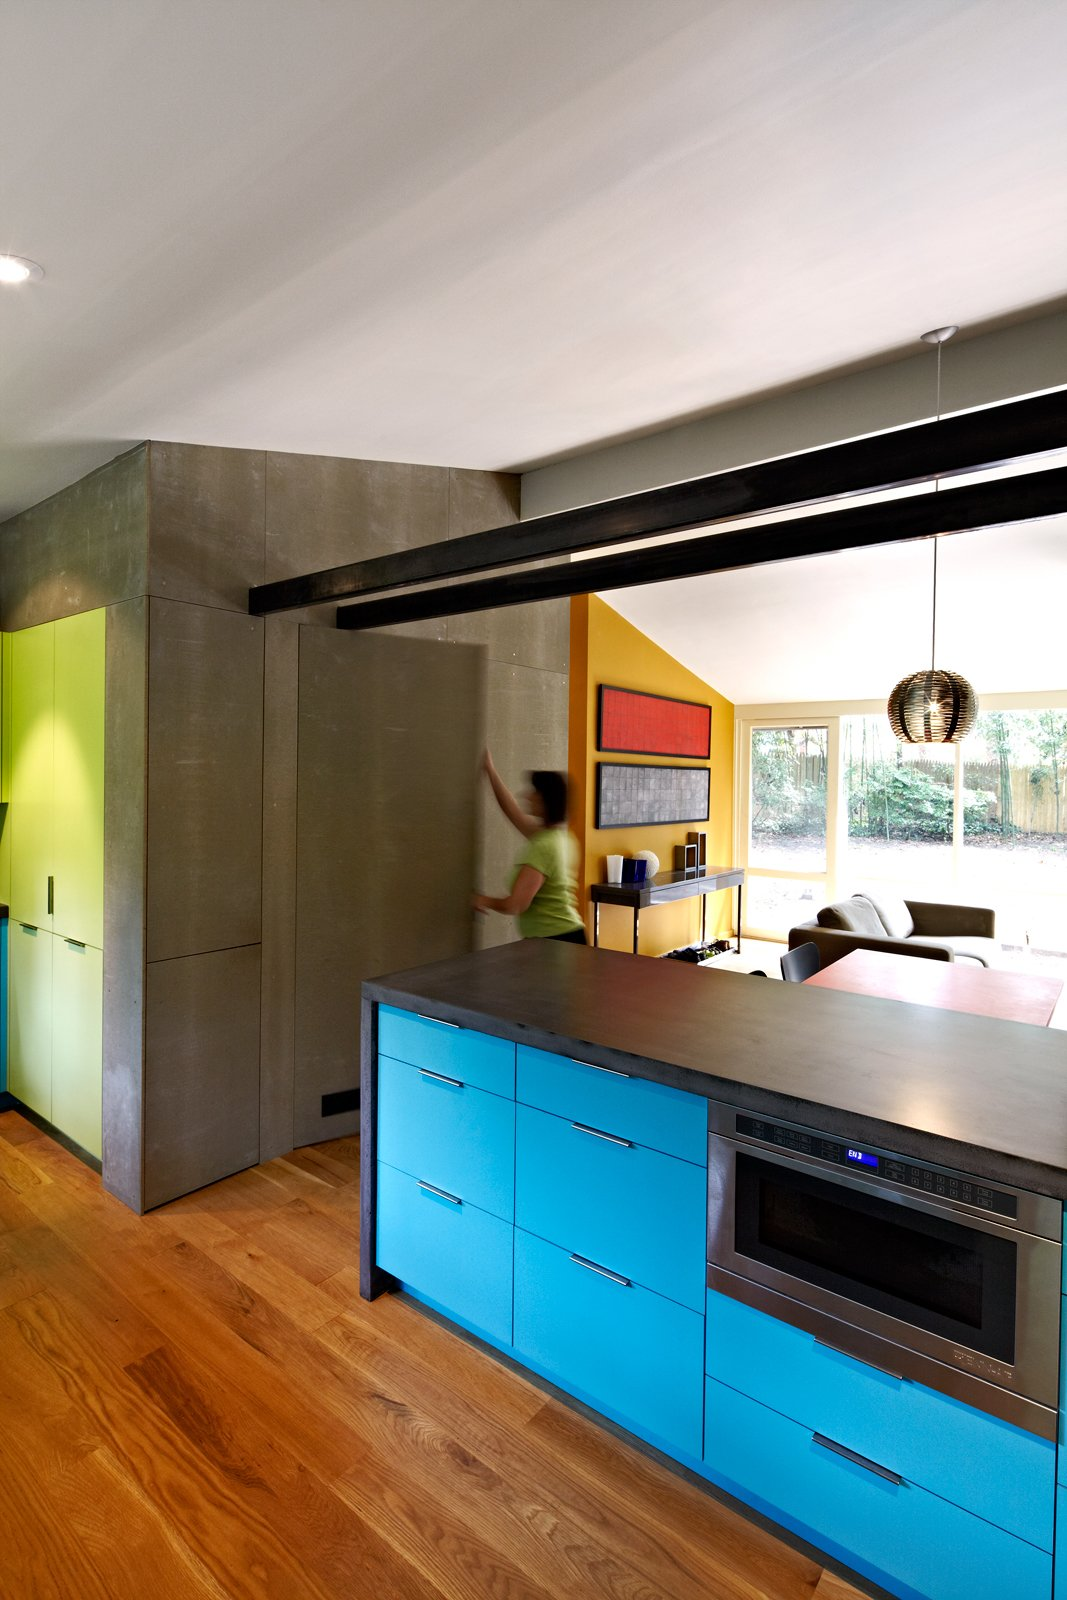 Kitchen, Microwave, Pendant Lighting, Colorful Cabinet, and Medium Hardwood Floor A dark concrete counter and blue laminate cabinets surround the Jenn-Air microwave drawer in architect Janet Bloomberg's kitchen. The pendant hanging above the table is a Tejido Round Suspension from Artemide. Photo by: Greg Powers  Photo 4 of 20 in 20 Best Modern Kitchen Counters from Modern Kitchen Renovation with Mid-Century Roots